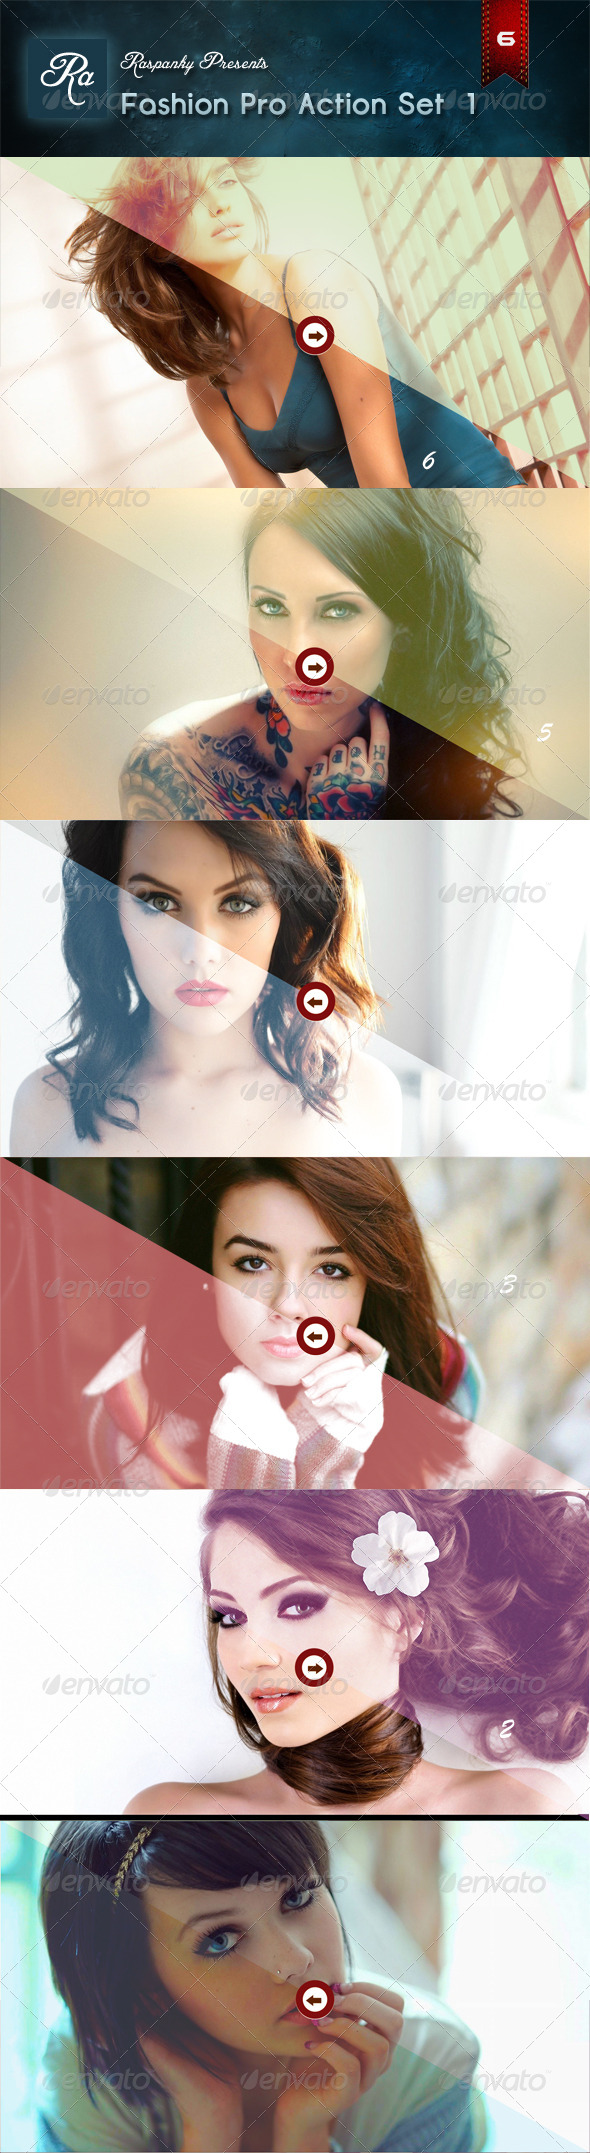 GraphicRiver Fashion Pro Action Set 1 6859434